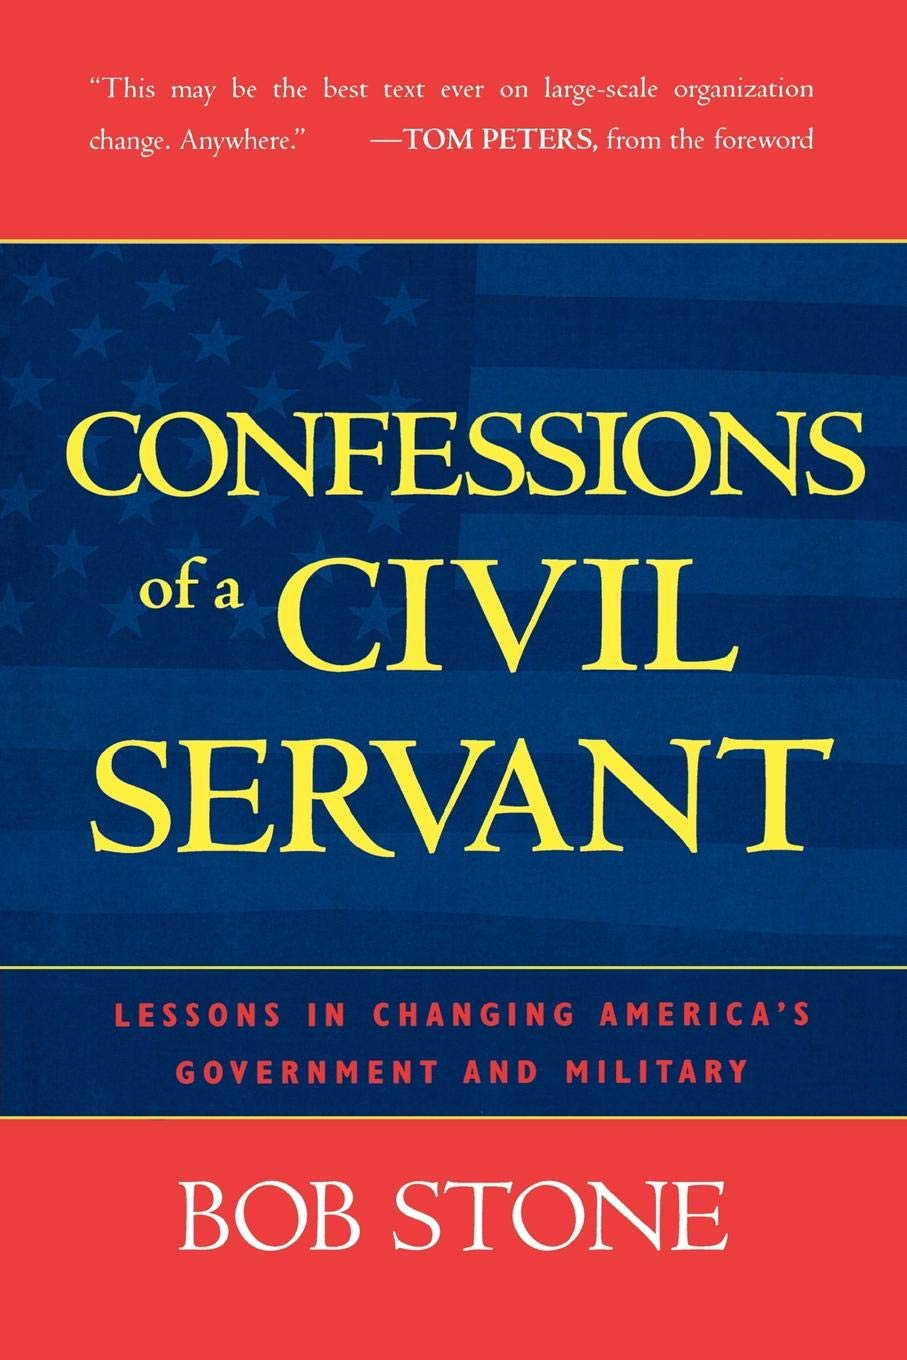 Confessions of a Civil Servant: Lessons in Changing America's Government and Military PDF